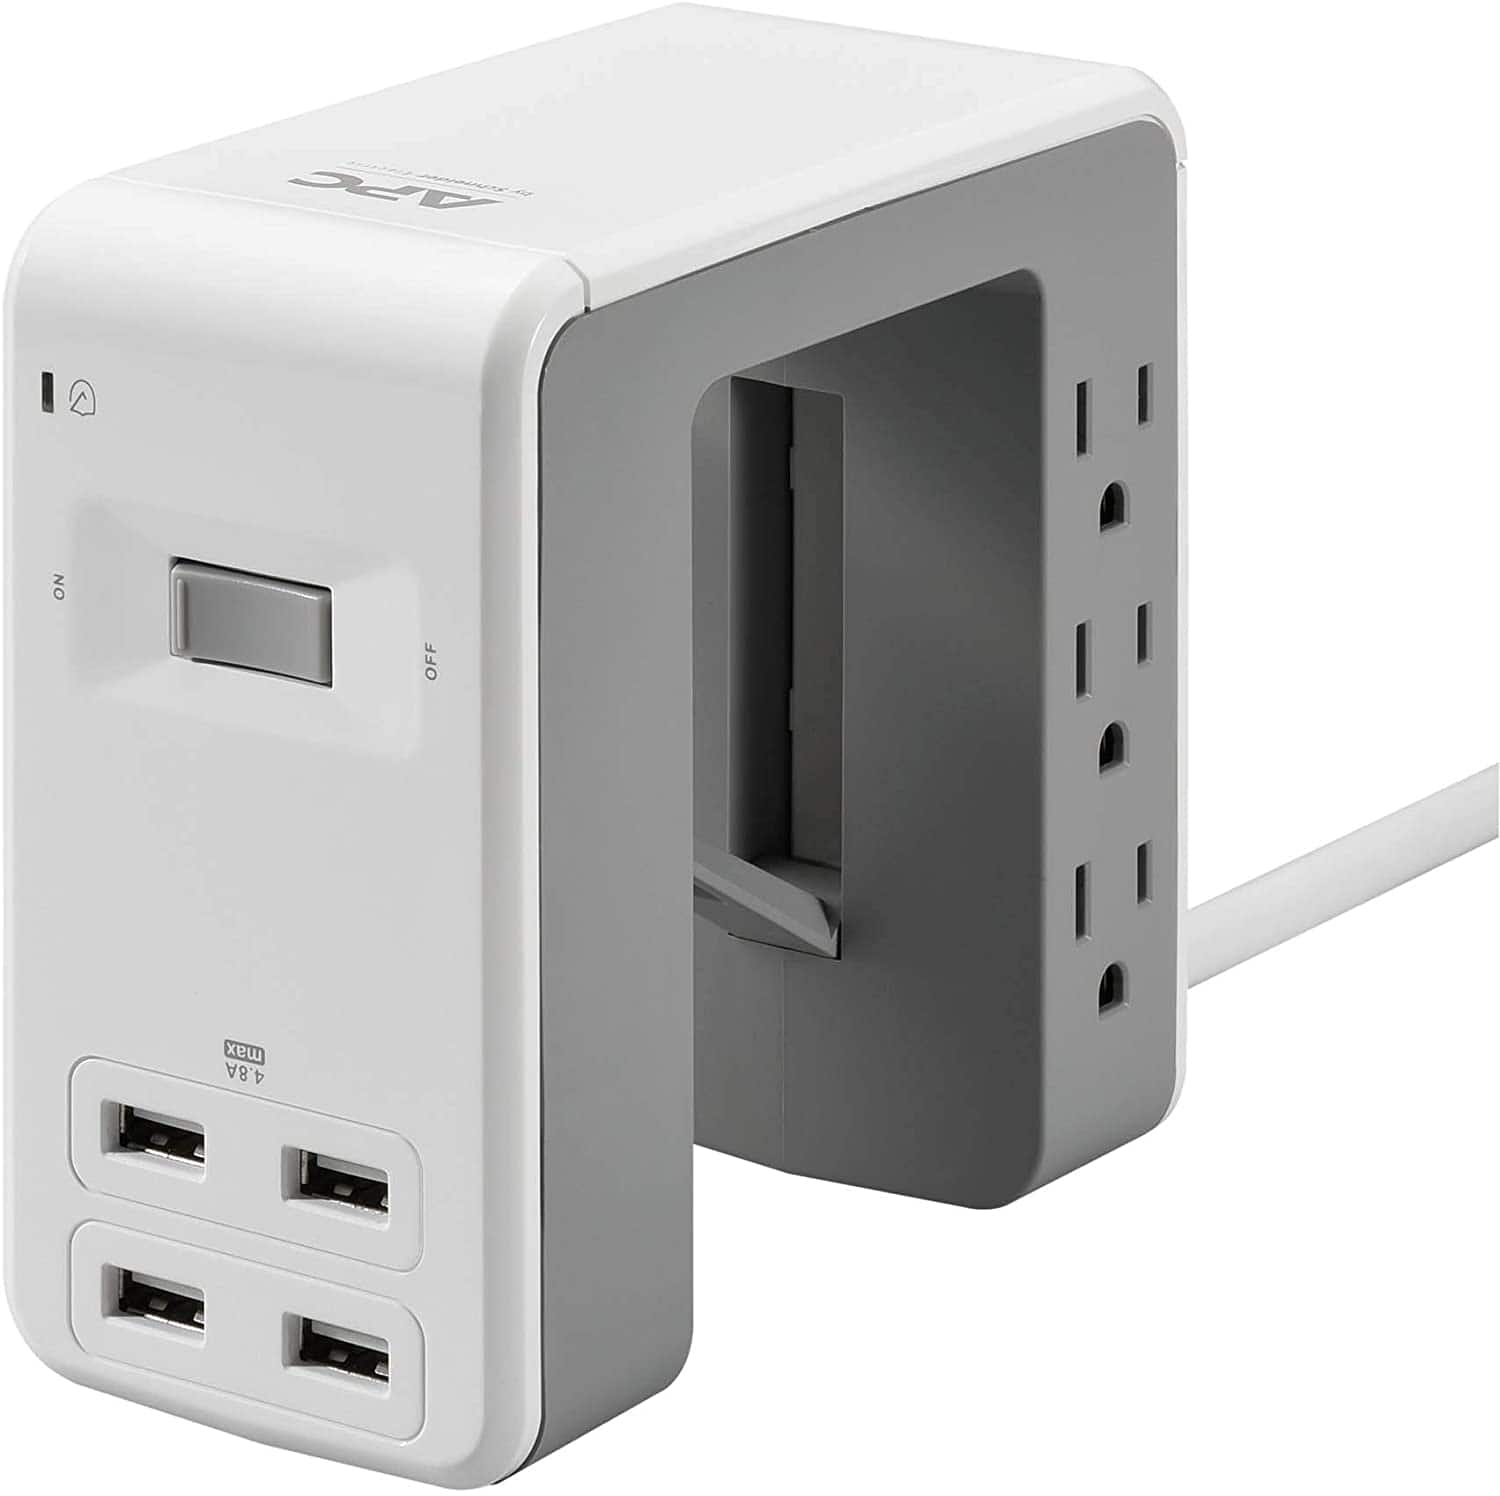 APC Desk Mount Power Station, 6 Outlet & 3 USB Charging Ports (Type C & Type A) $22.94